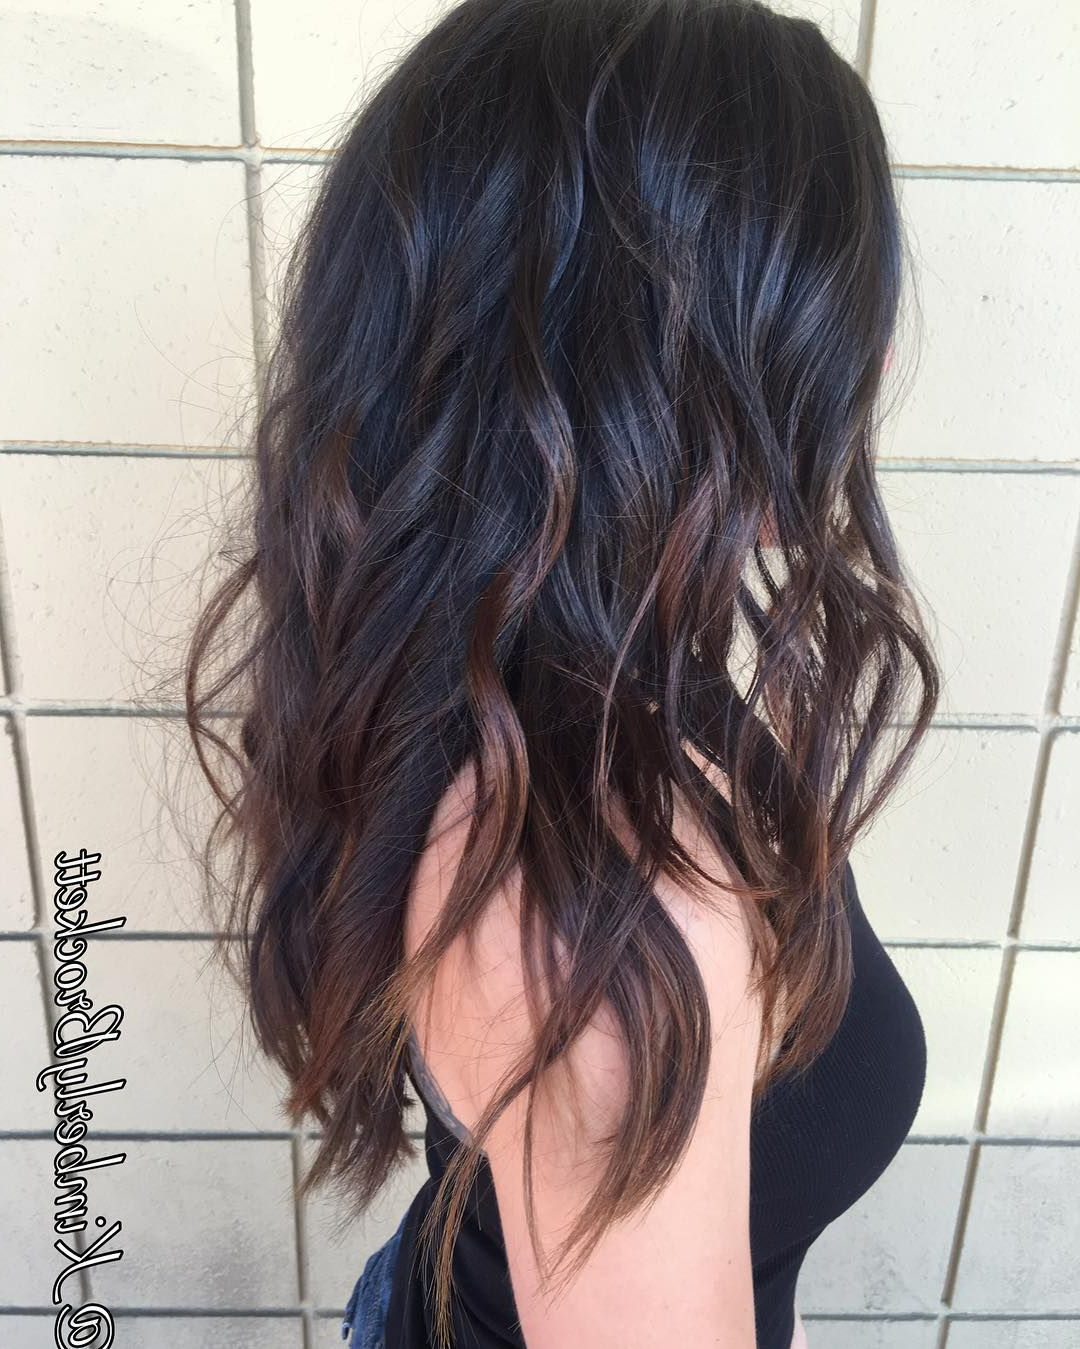 Wavy Black Long Layered Hair With Chocolate Brown Balayage | Long Regarding Chic Chocolate Layers Hairstyles (View 6 of 20)